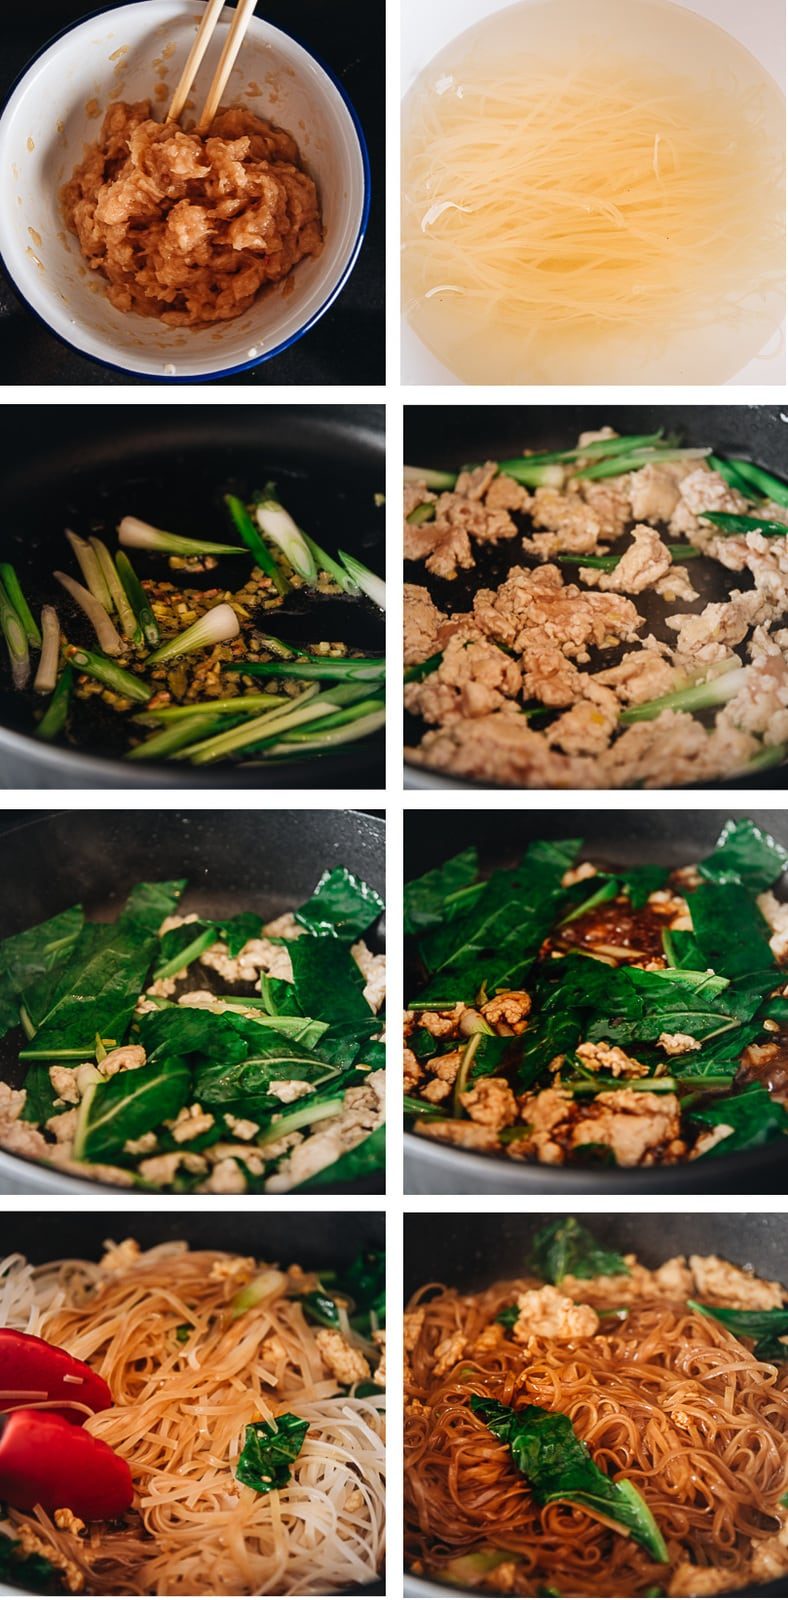 Homemade fried noodles cooking step-by-step